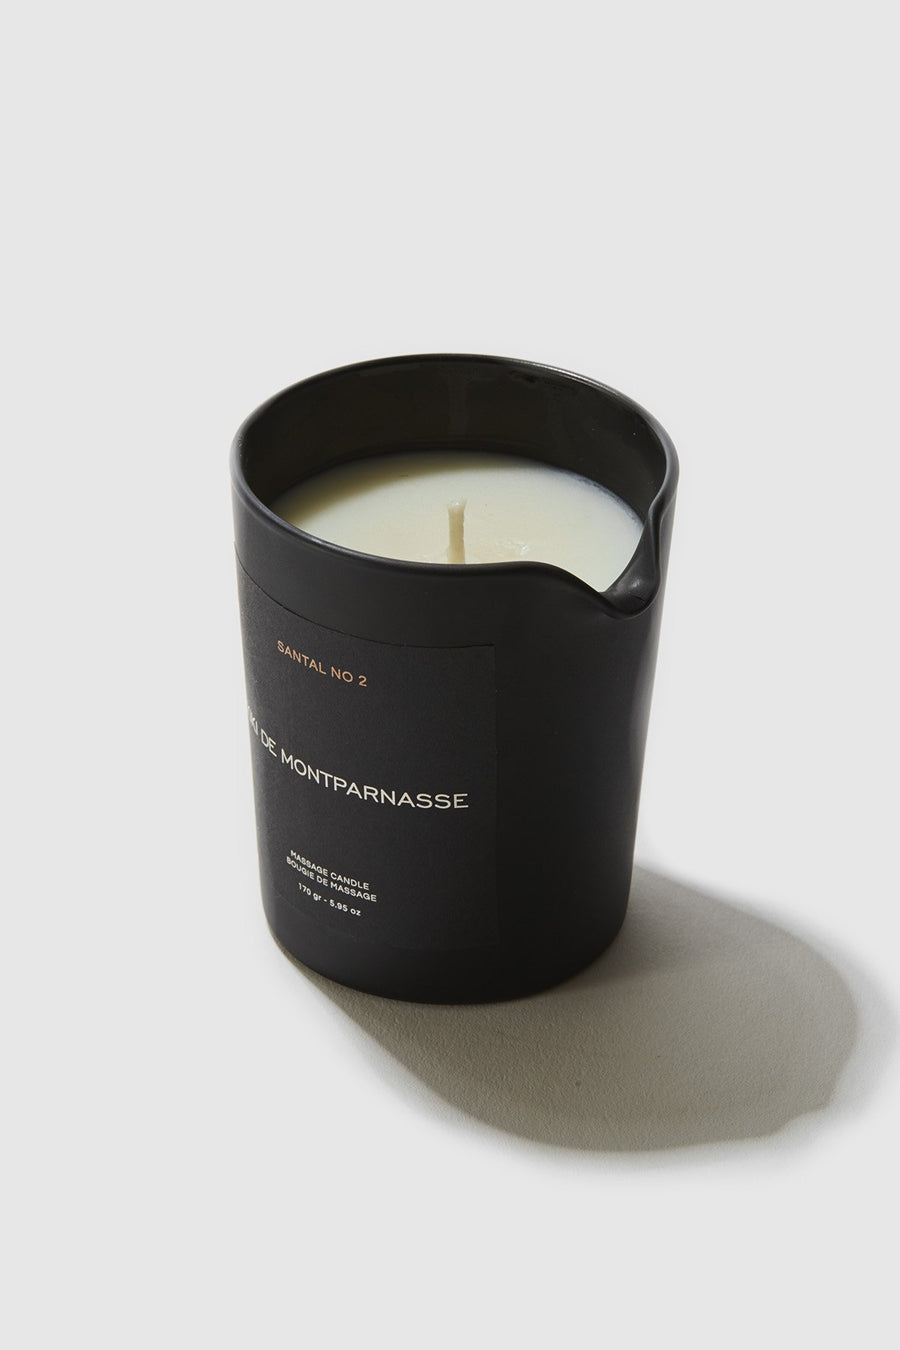 Massage Candle, Santal No. 2 - The Beach Bride by Chic Parisien, a destination for beach weddings, bachelorettes and honeymoons